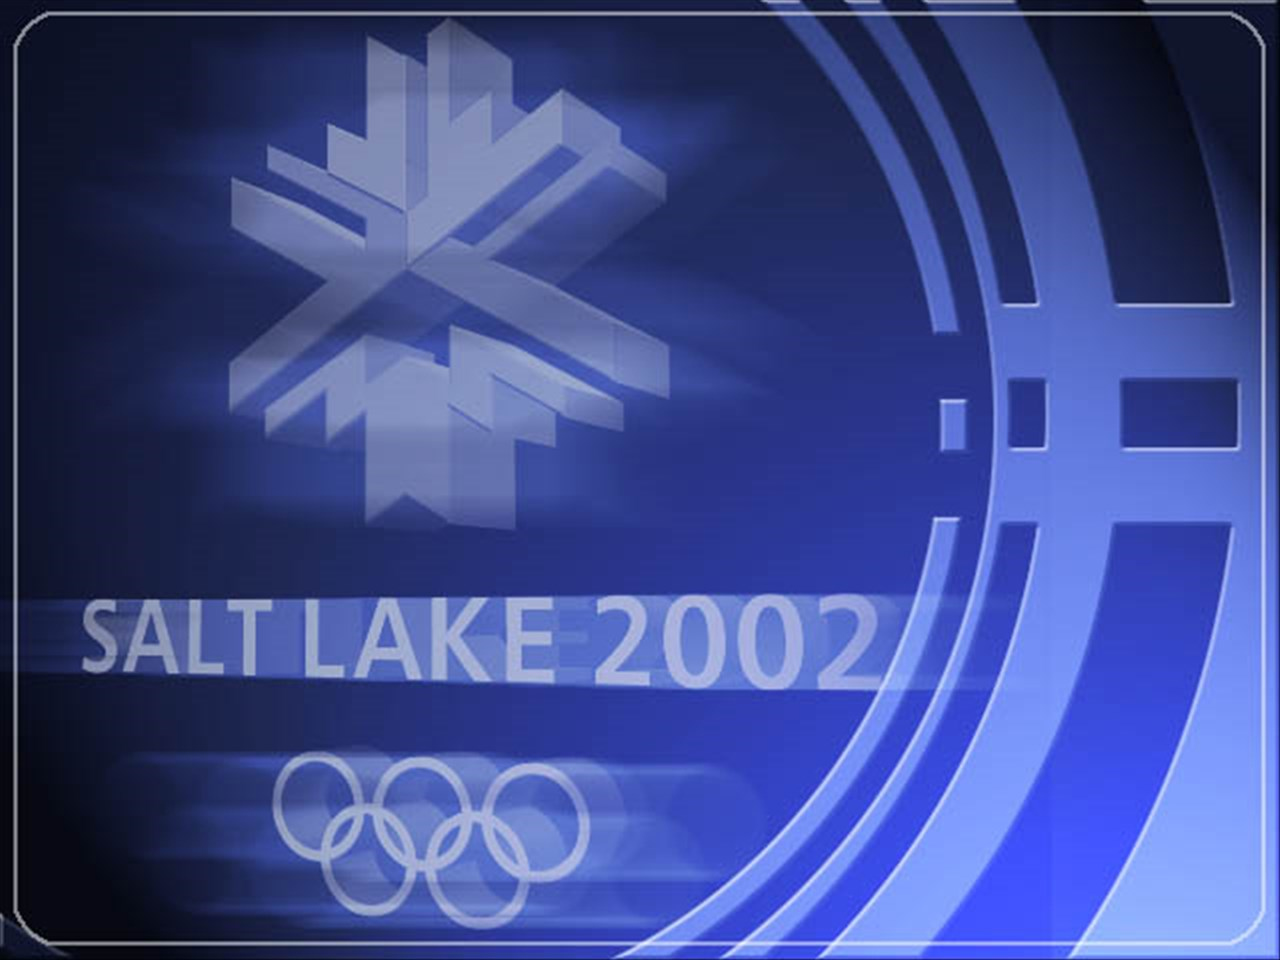 NSA officials deny mass surveillance during Utah Olympics (Photo: MGN)